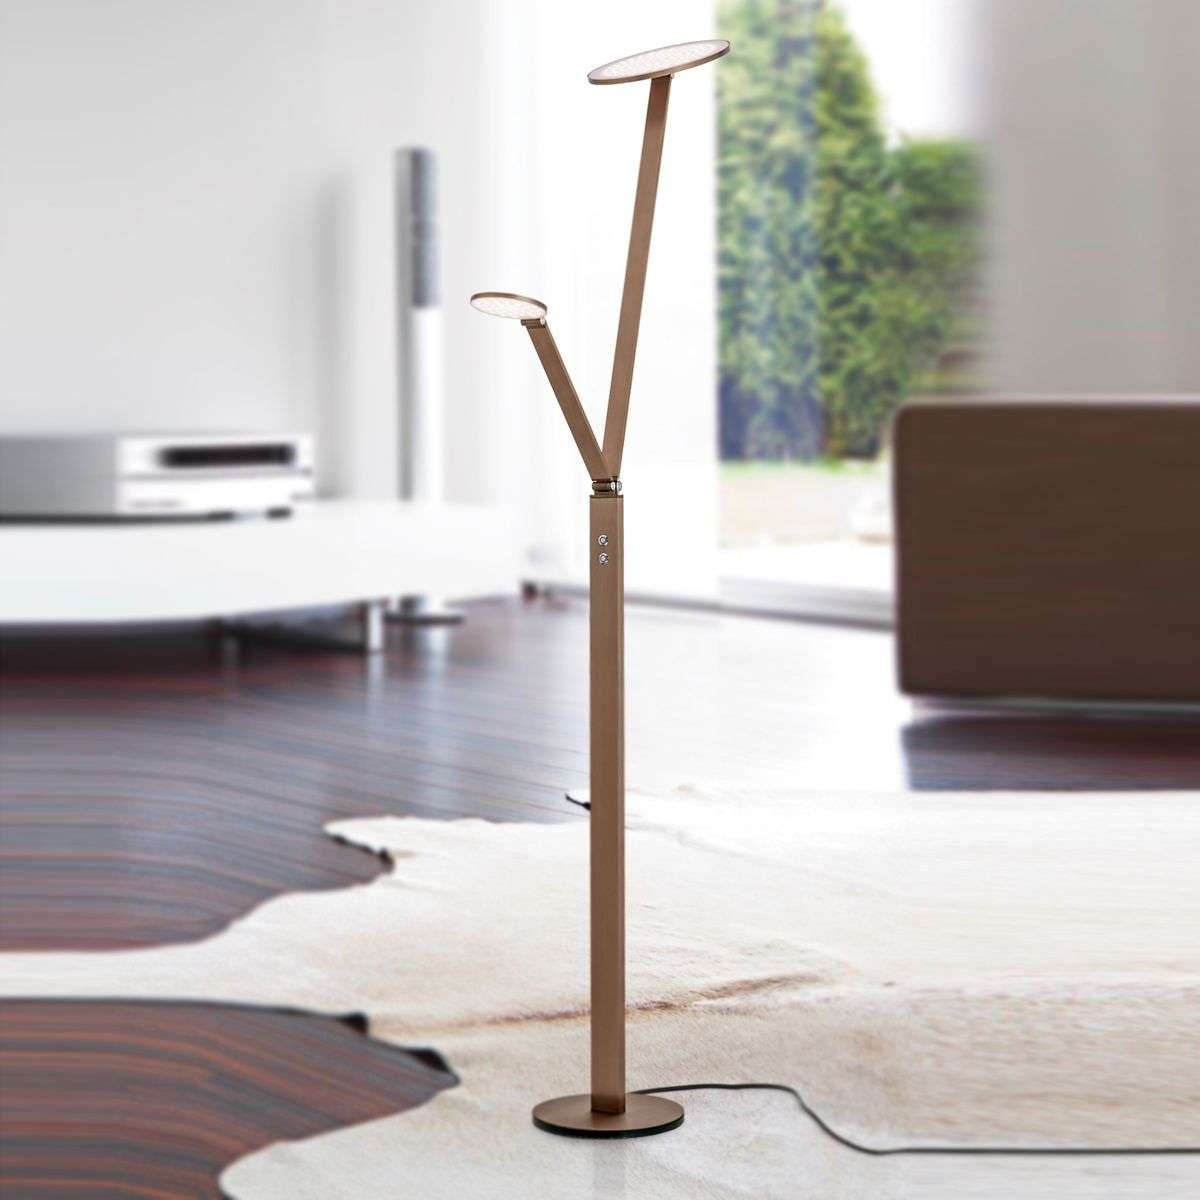 Led floor lamp ayana 2 light with 4 level dimmer for 12 volt floor lamps